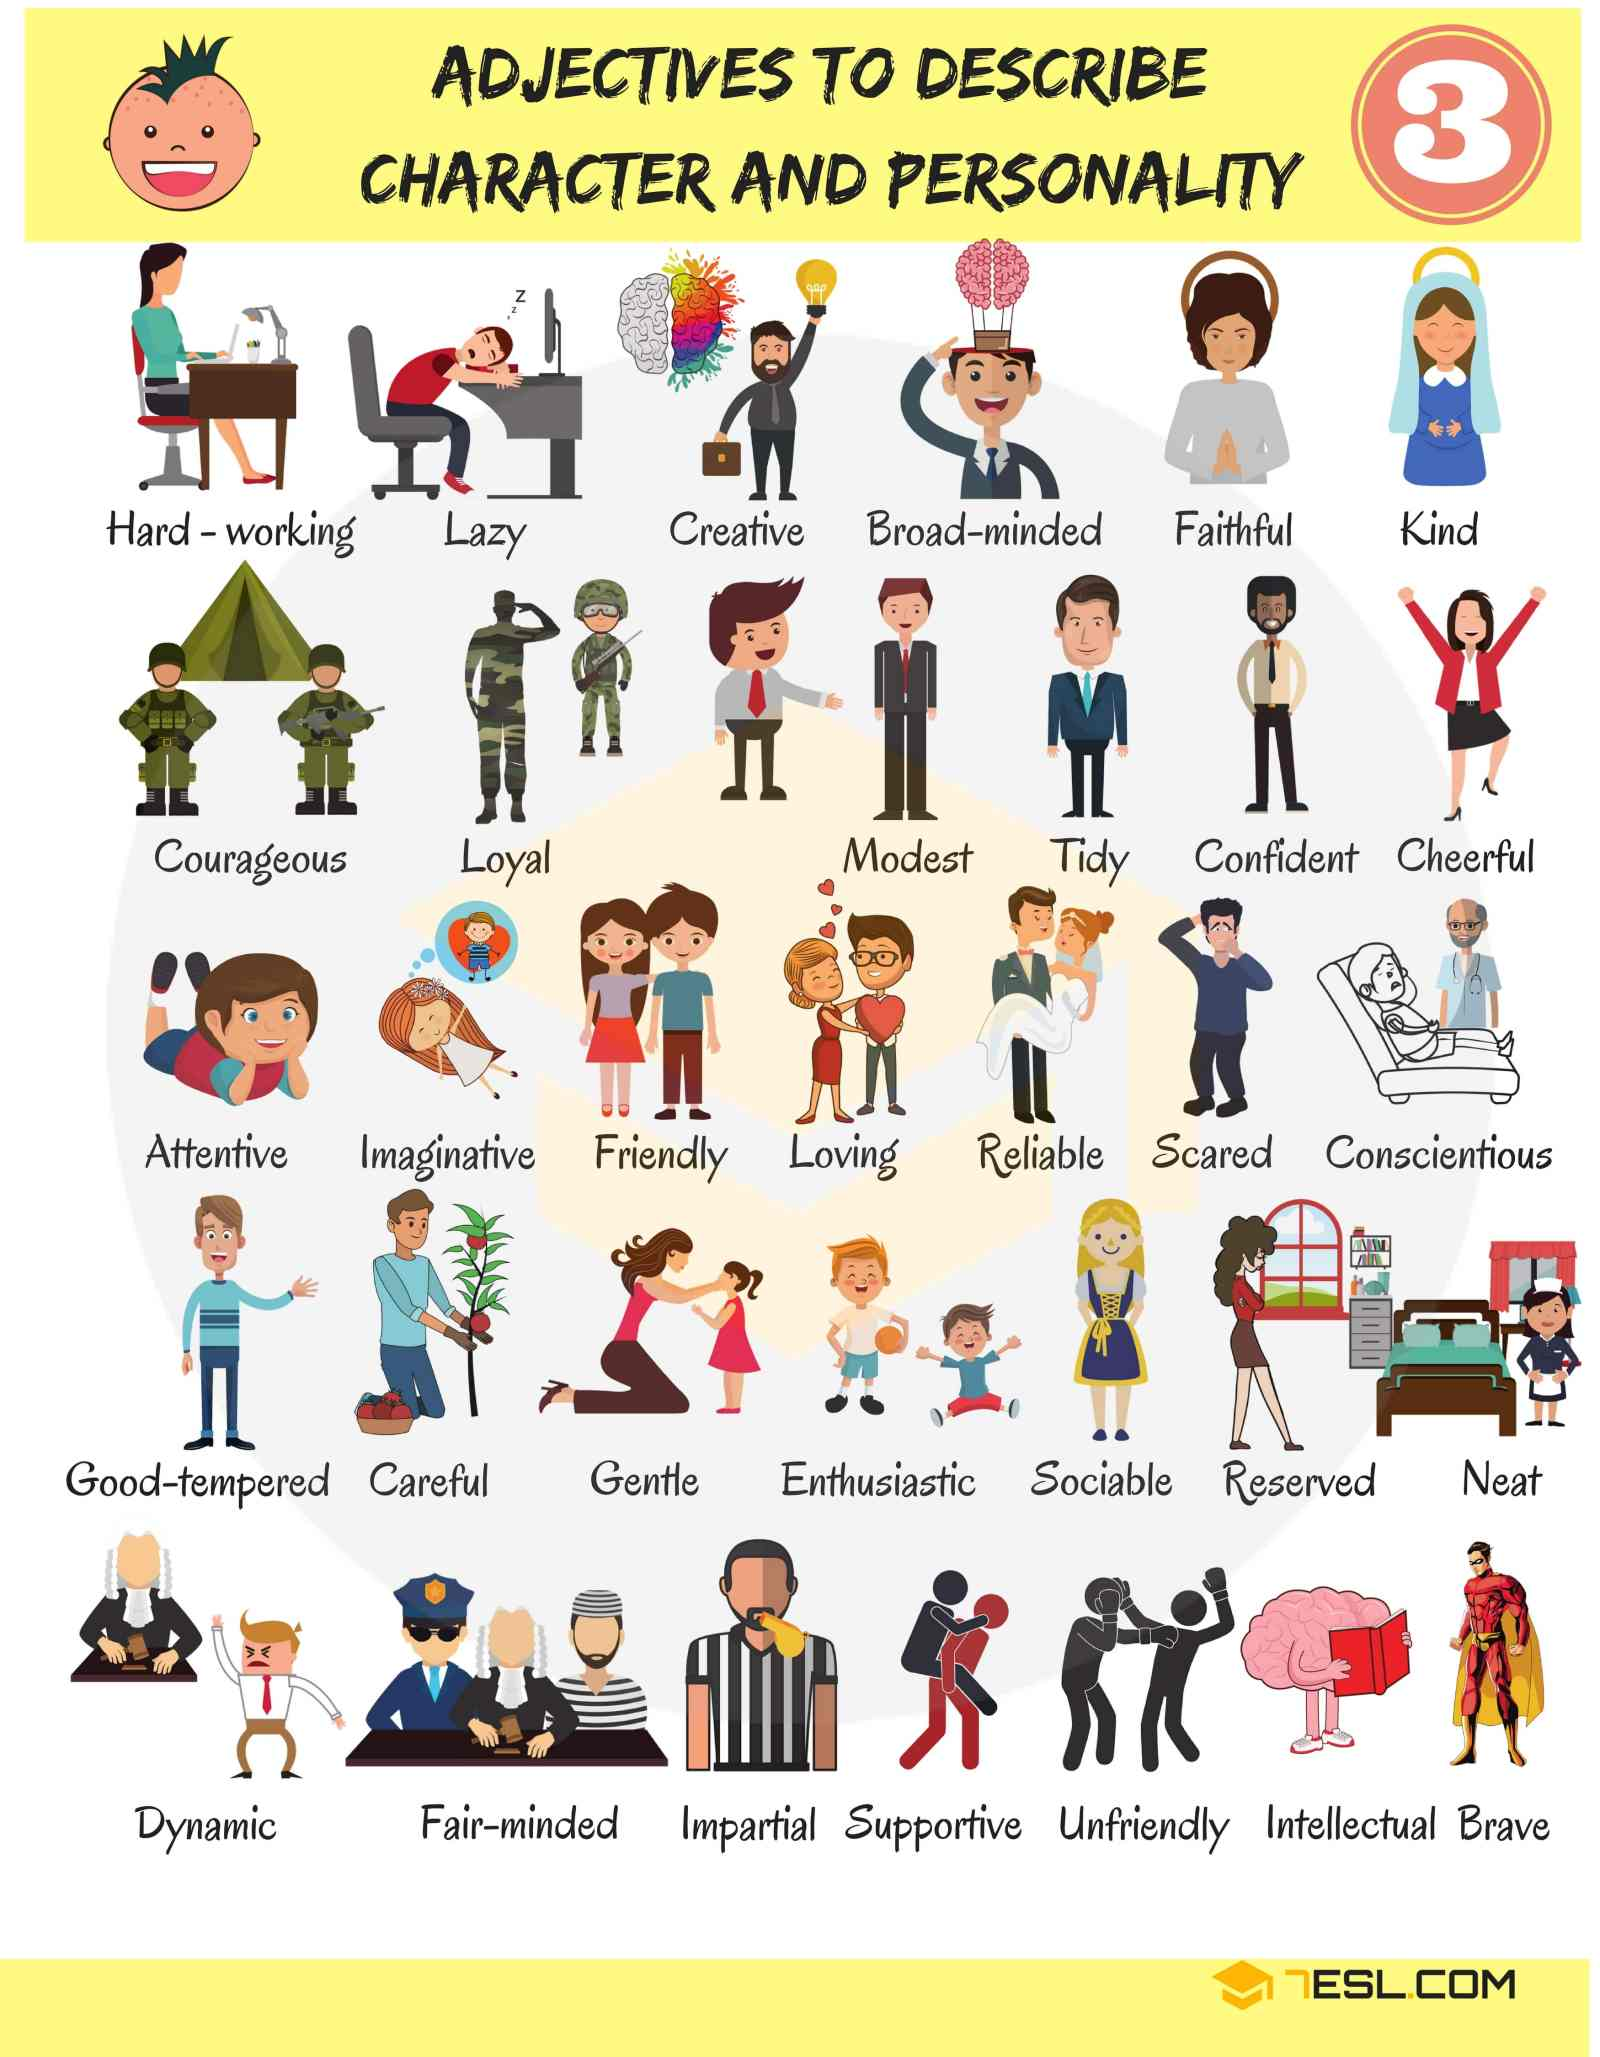 English Adjectives for Describing Character and Personality 15